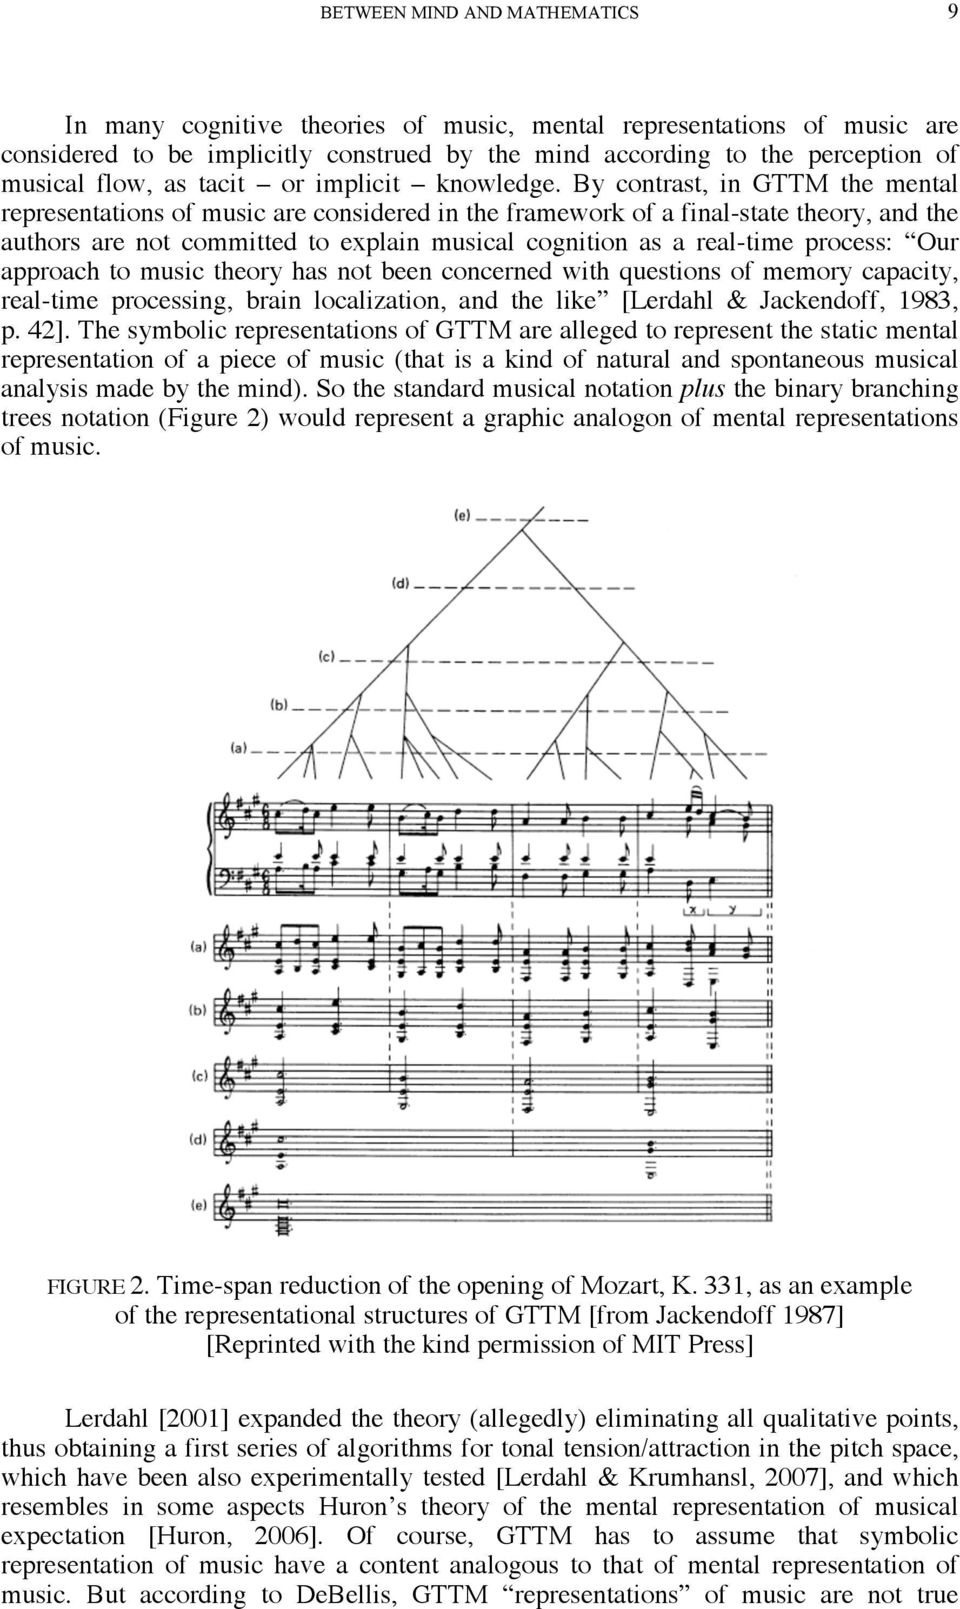 By contrast, in GTTM the mental representations of music are considered in the framework of a final-state theory, and the authors are not committed to explain musical cognition as a real-time